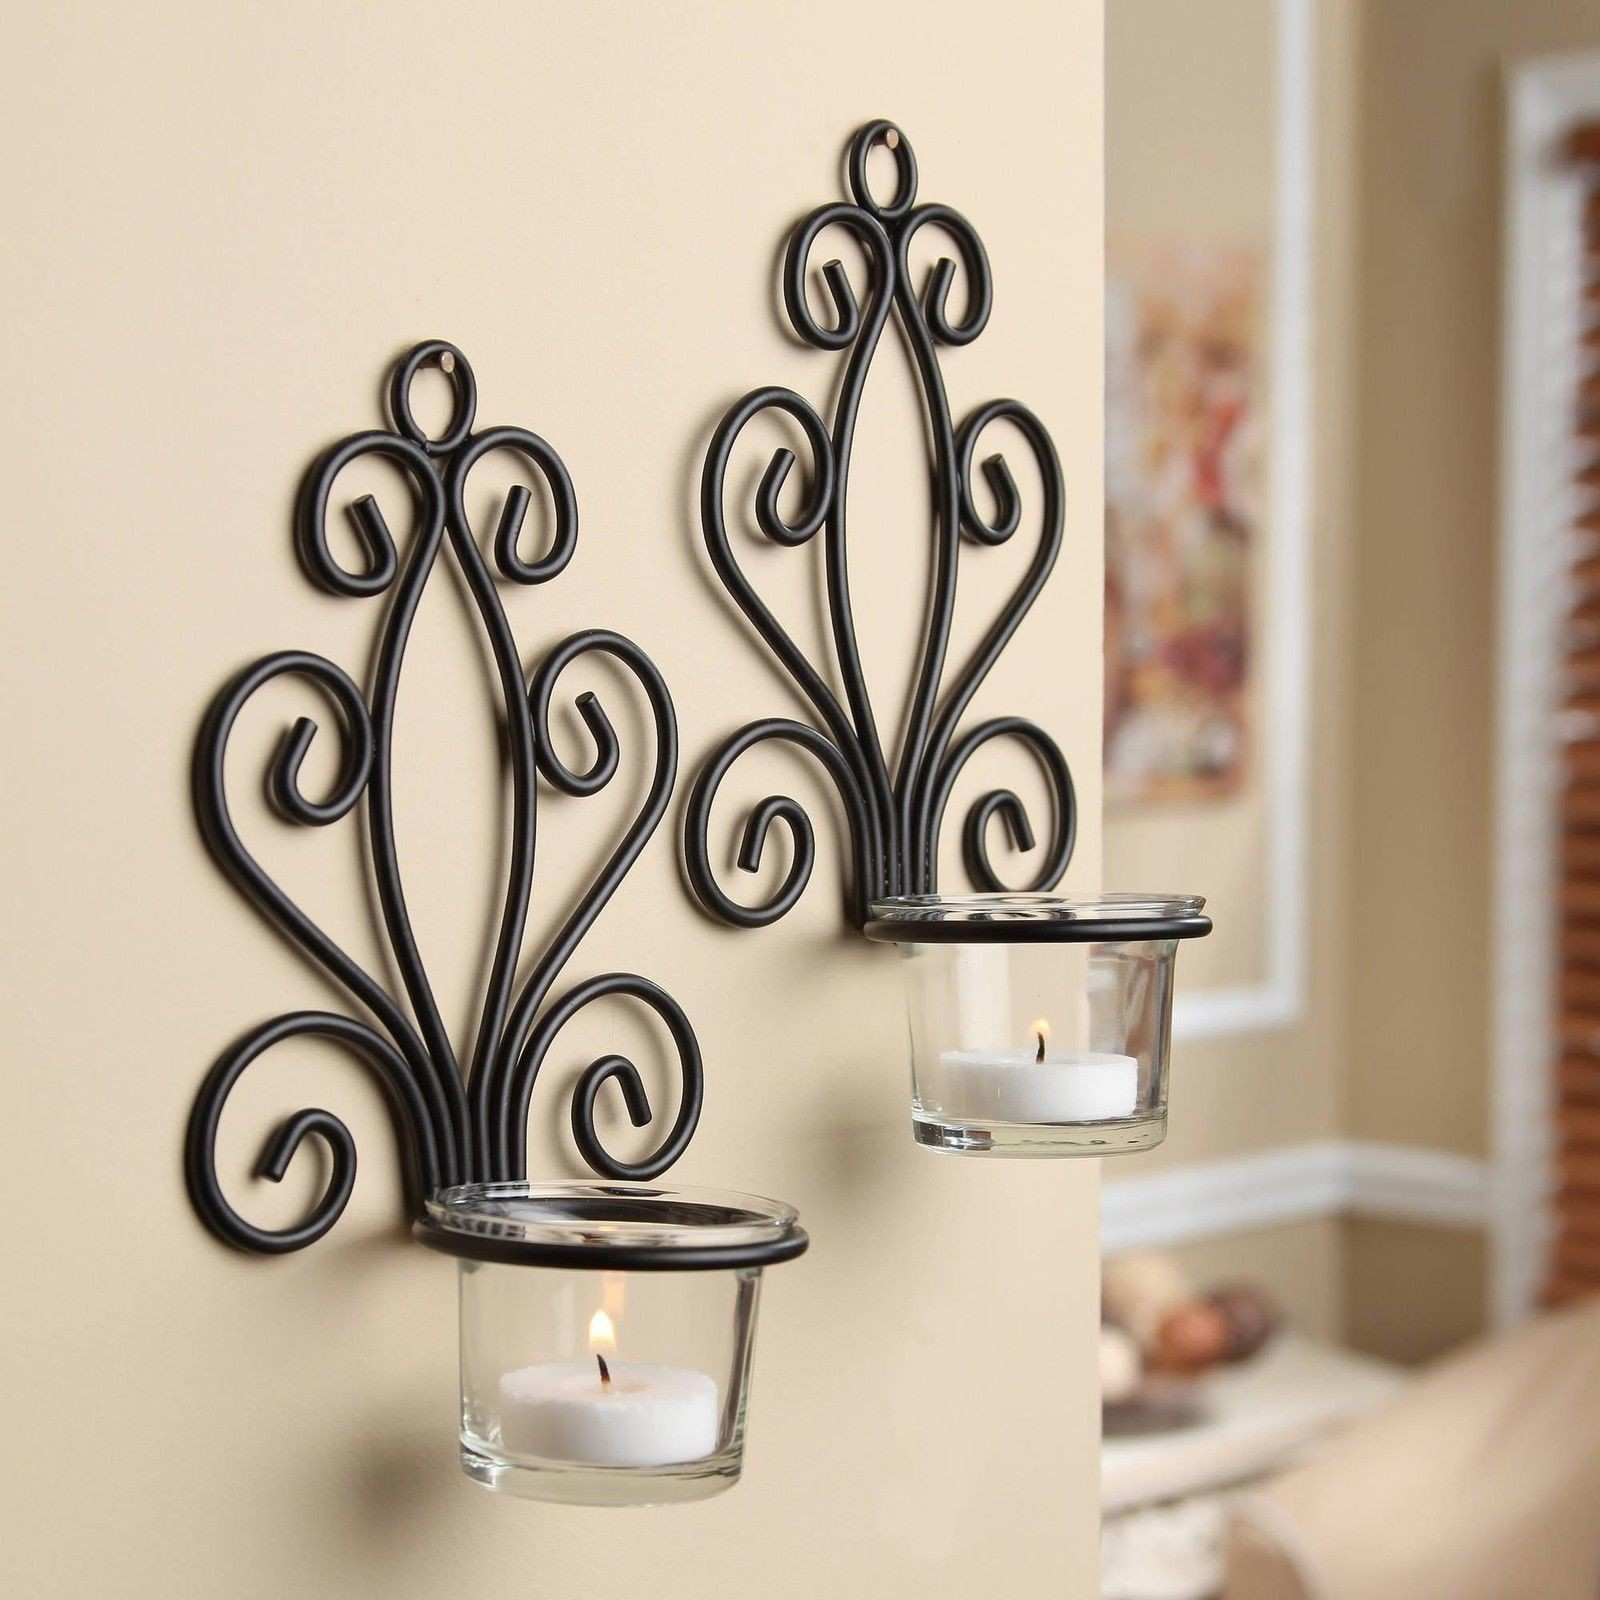 Mainstays Scroll Wall Sconce Candleholders Set of 2